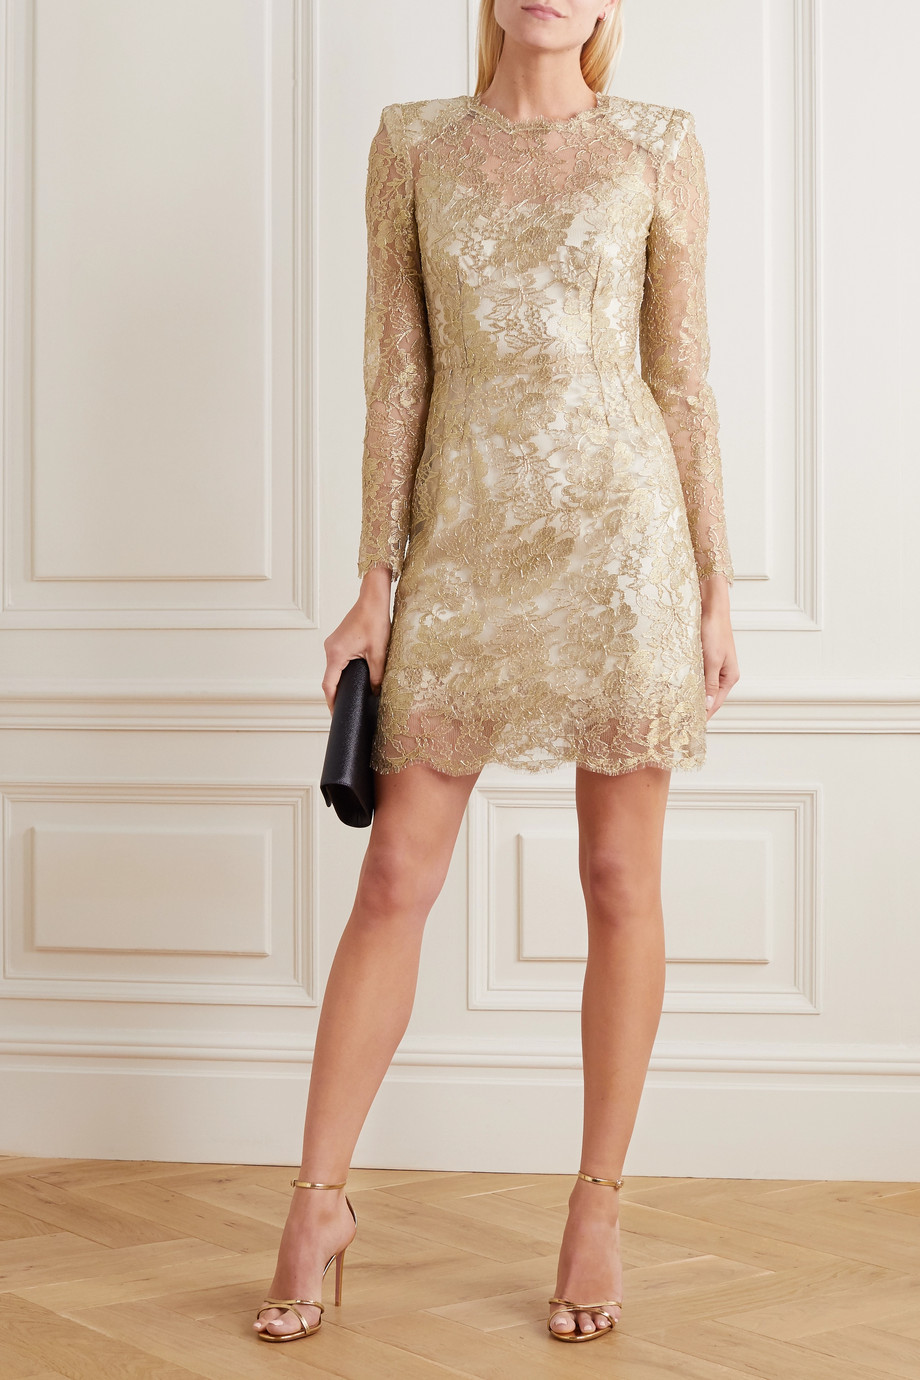 Dolce & Gabbana Minikleid aus Chantilly-Spitze in Metallic-Optik